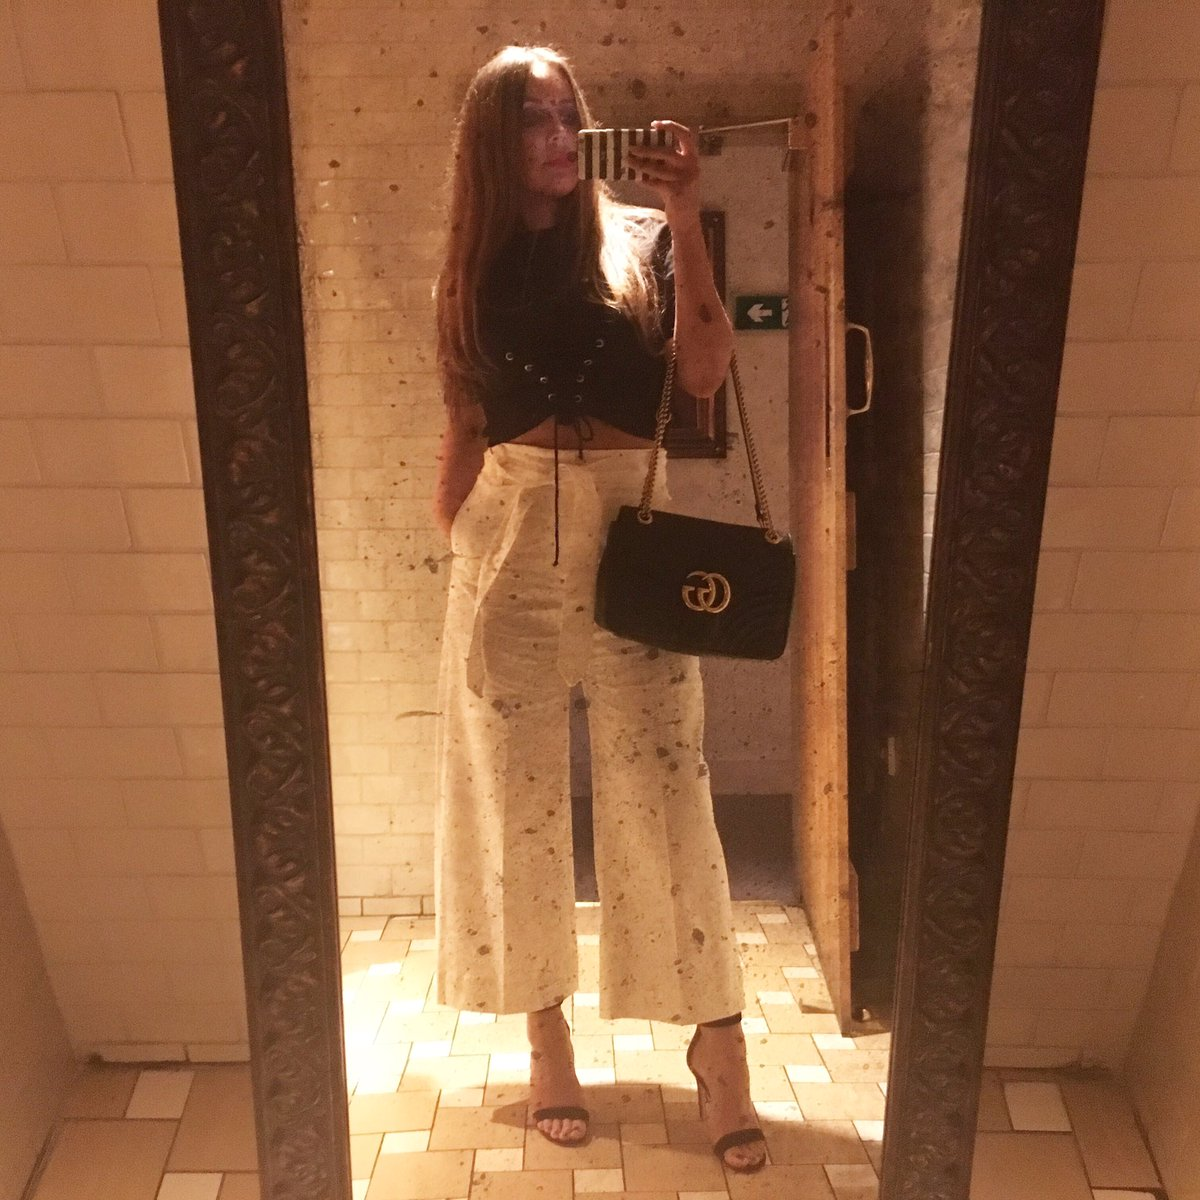 Impossible not to take a bathroom selfie whilst out .. #georges #fridaynight #prosecco #gucci #gianvitorossi #zara @Georges_Worsley<br>http://pic.twitter.com/PFGts1Kbw3 &ndash; bij George&#39;s Dining Room &amp; Bar